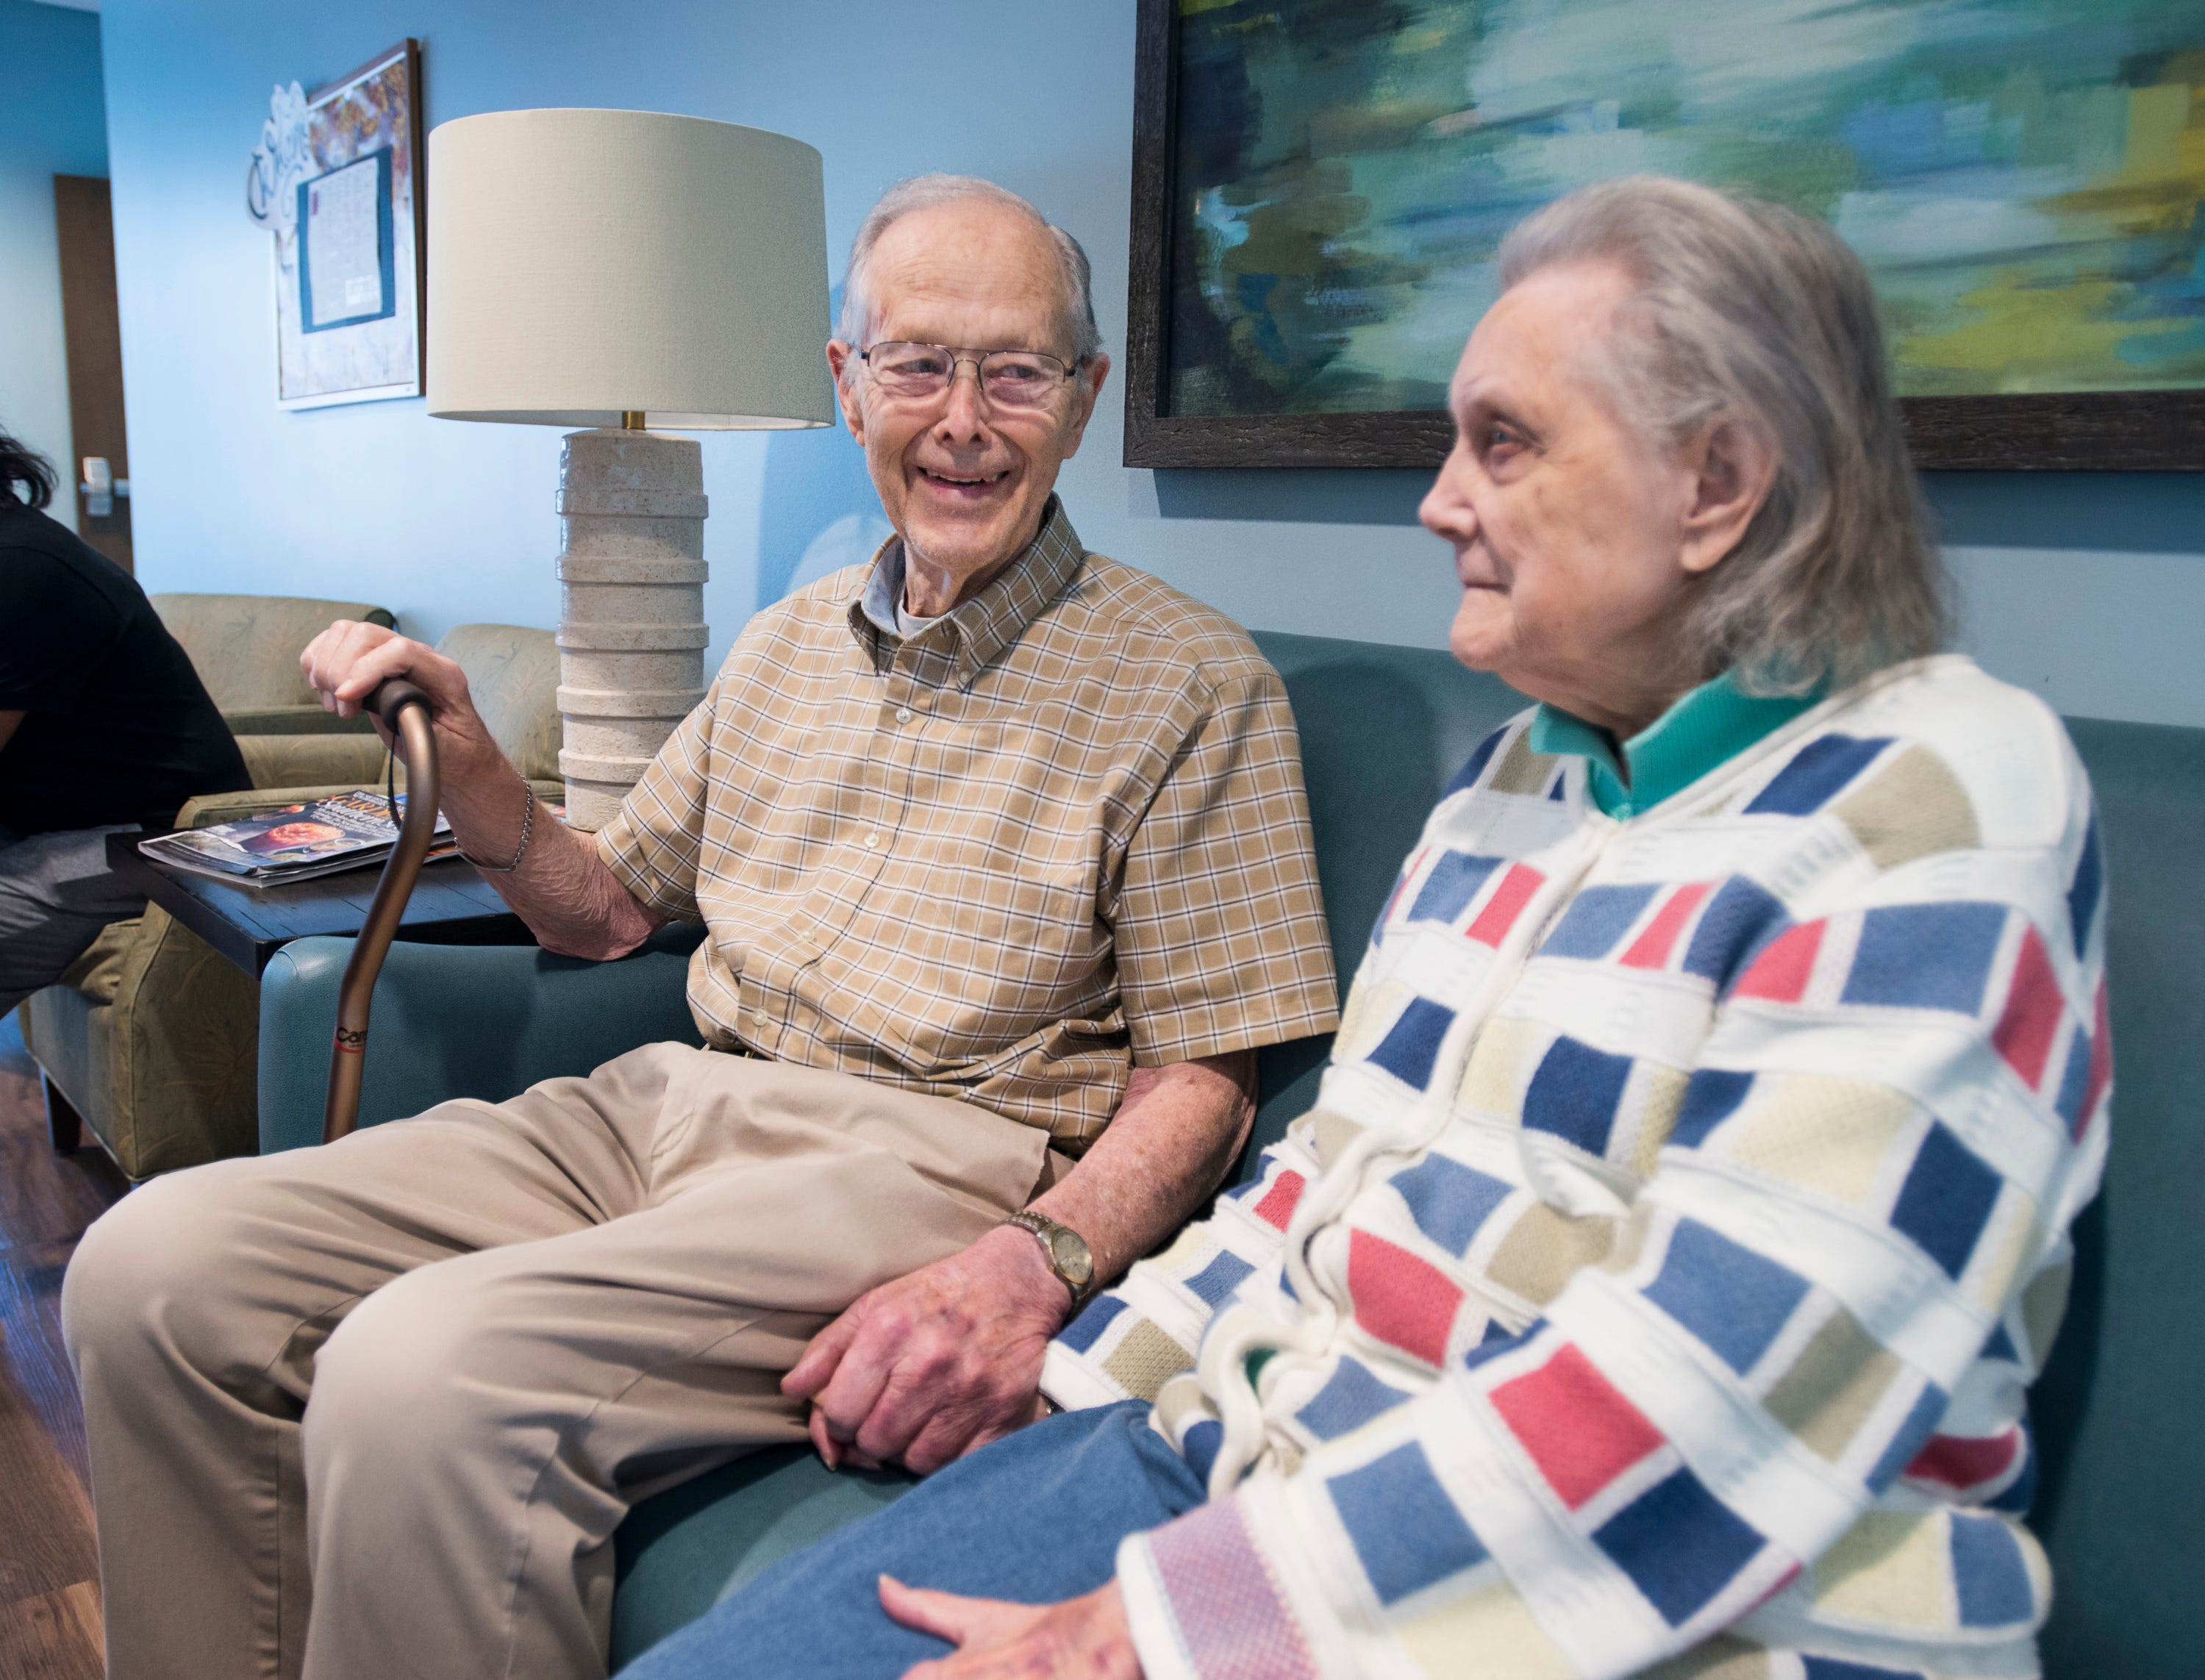 Rob Riehlman and his wife Pat, a Seagrass Village of Panama City Beach resident, talk about their temporary stay at The Arbors in Gulf Breeze on Thursday, October 11, 2018.  Seagrass residents and staff were evacuated ahead of the storm to this sister community in Gulf Breeze.  Riehlman explained that his son's house, where he lives, sustained minor damage in the storm.